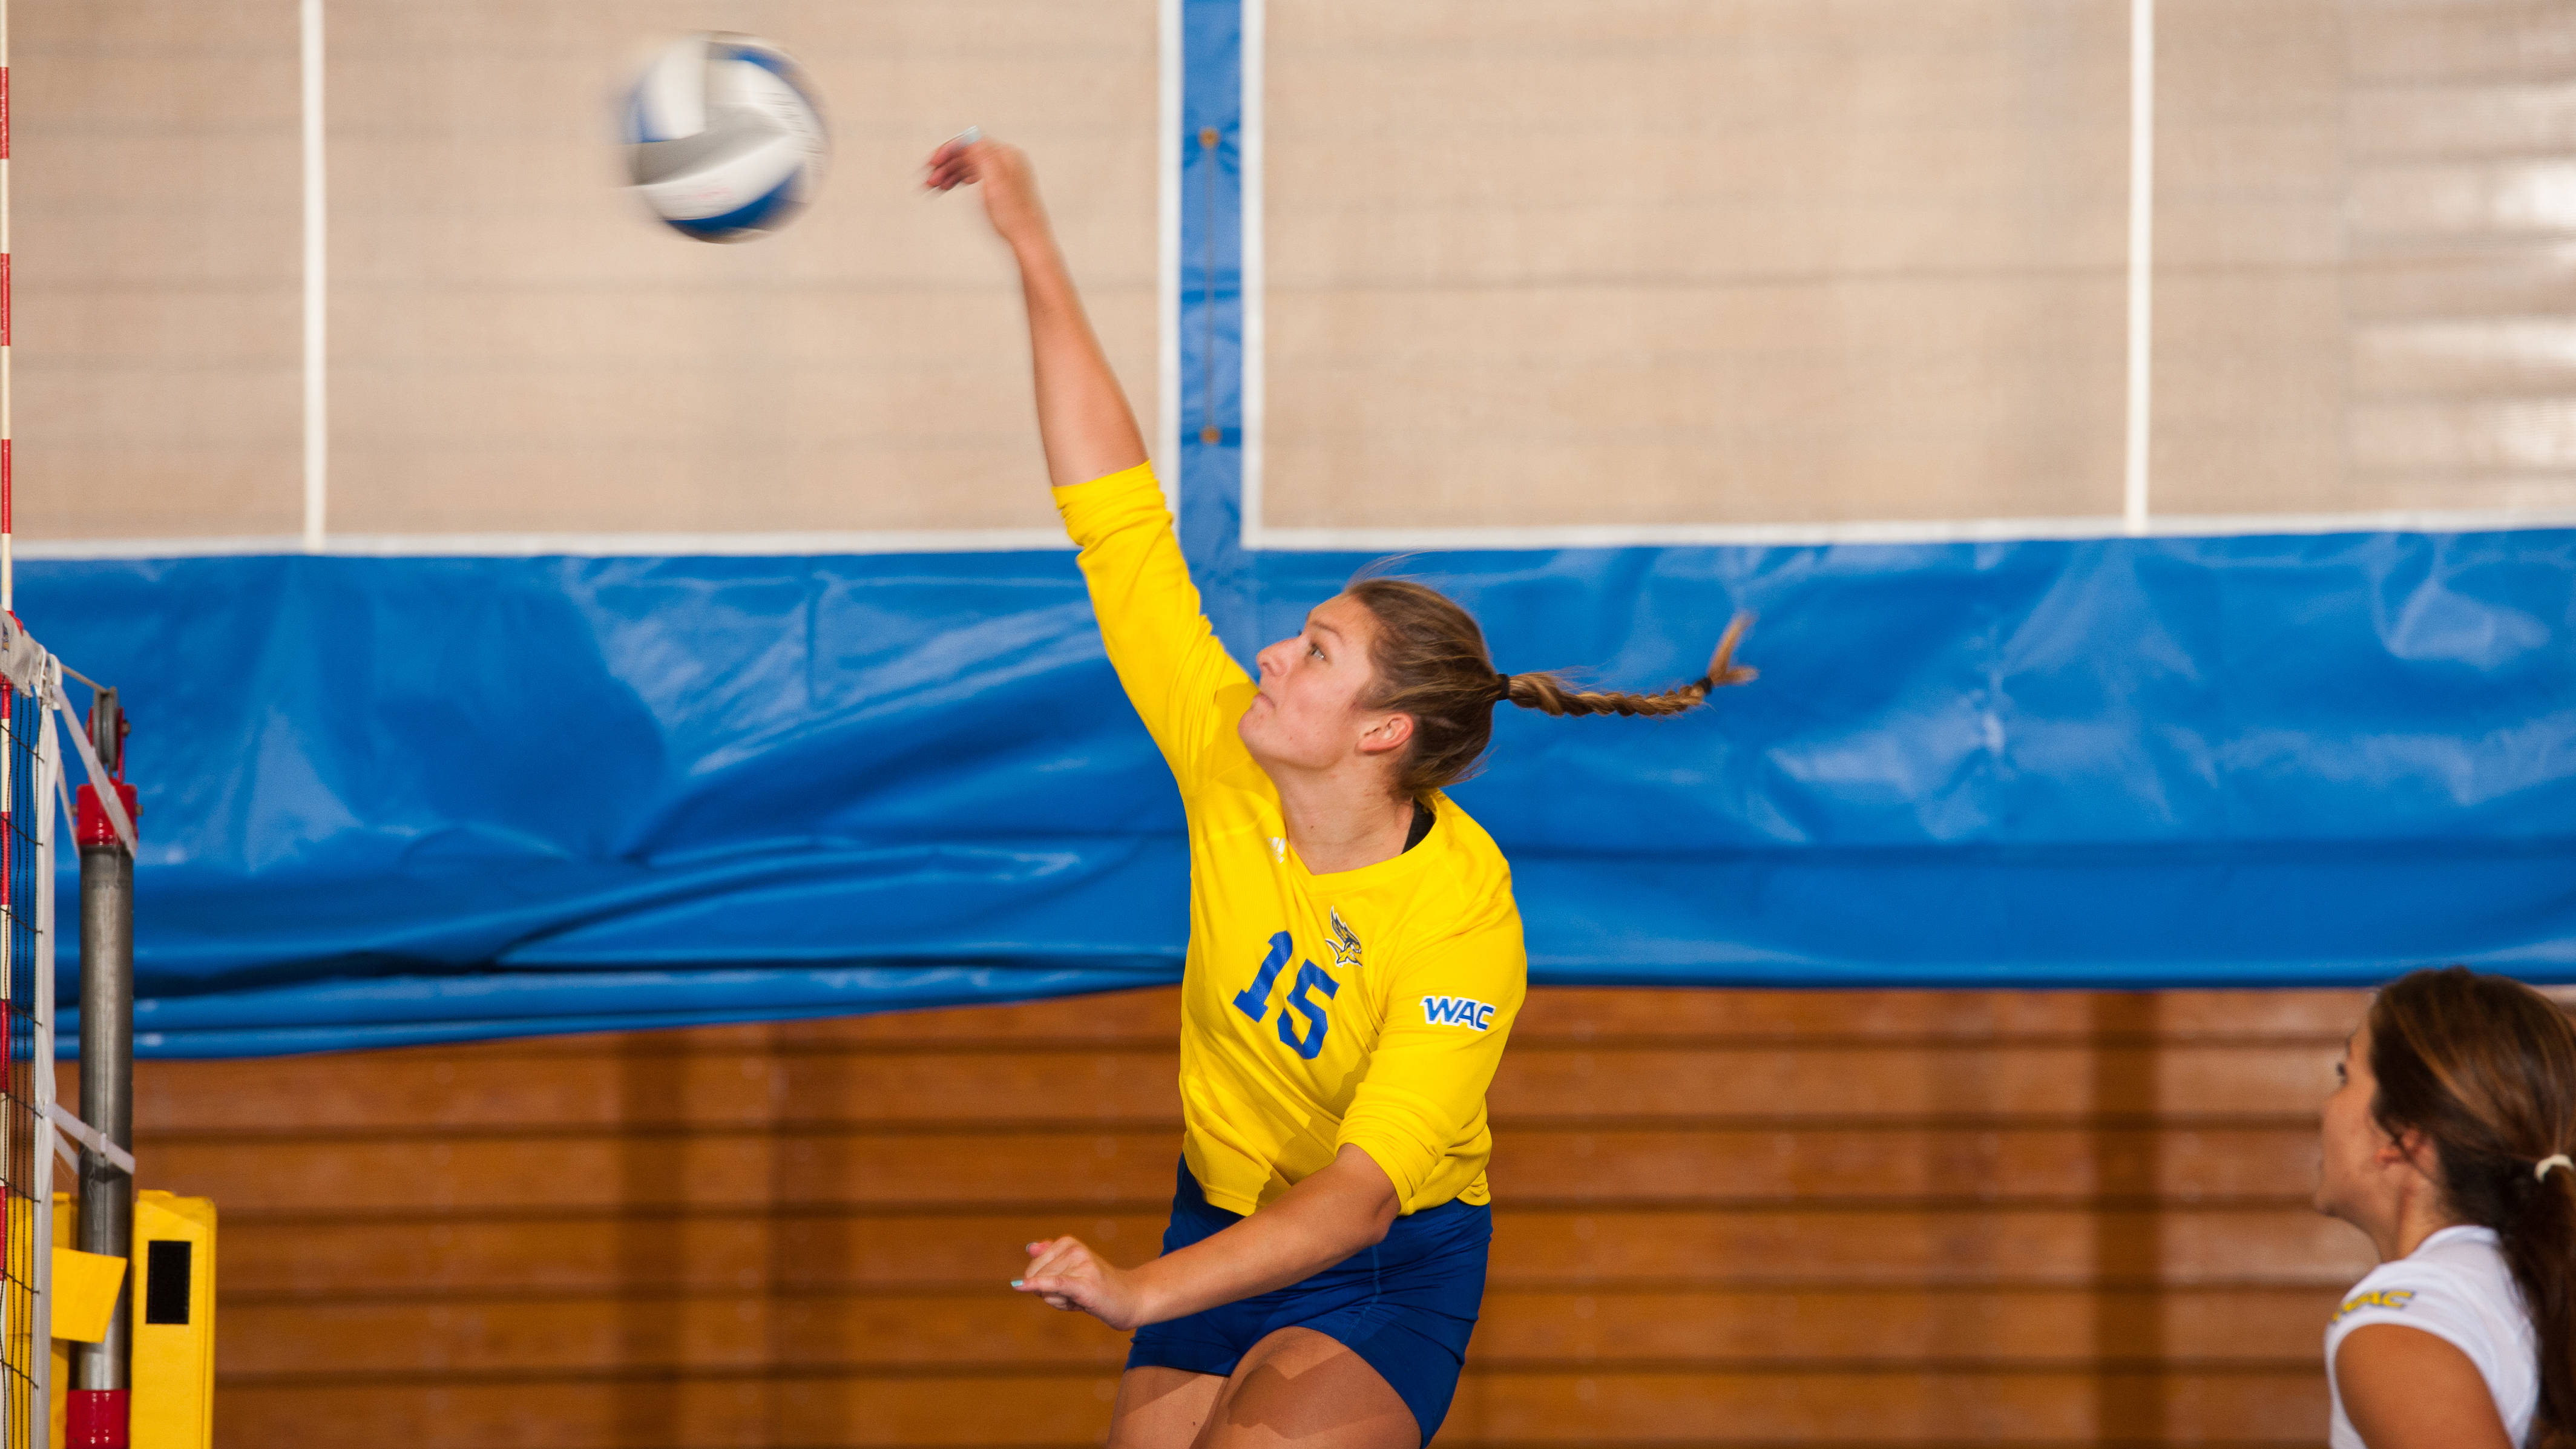 Runner Volleyball Set To Host 4 Camps In July California State University At Bakersfield Athletics